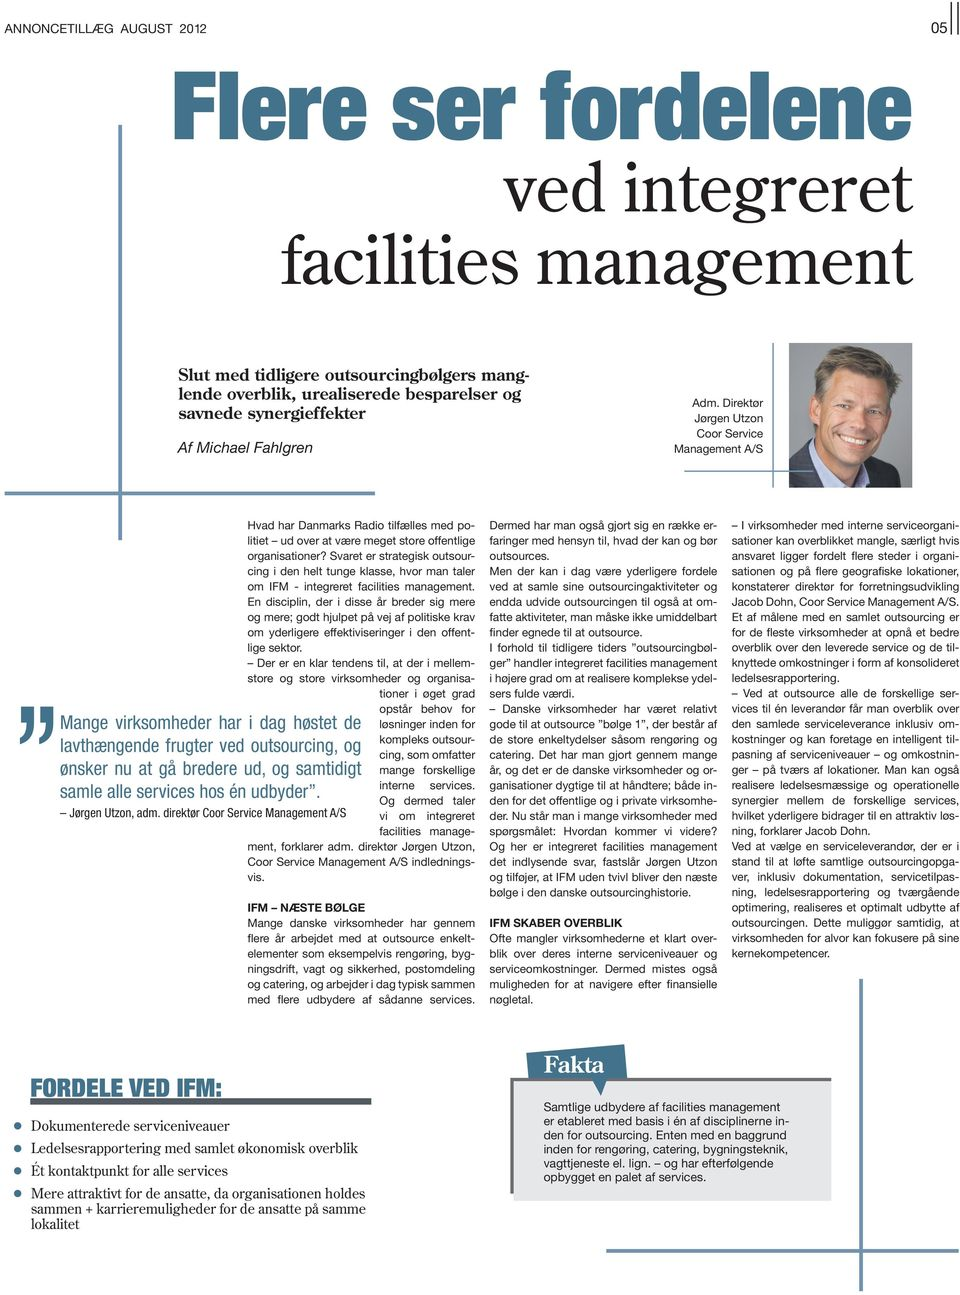 Svaret er strategisk outsourcing i den helt tunge klasse, hvor man taler om IFM - integreret facilities management.